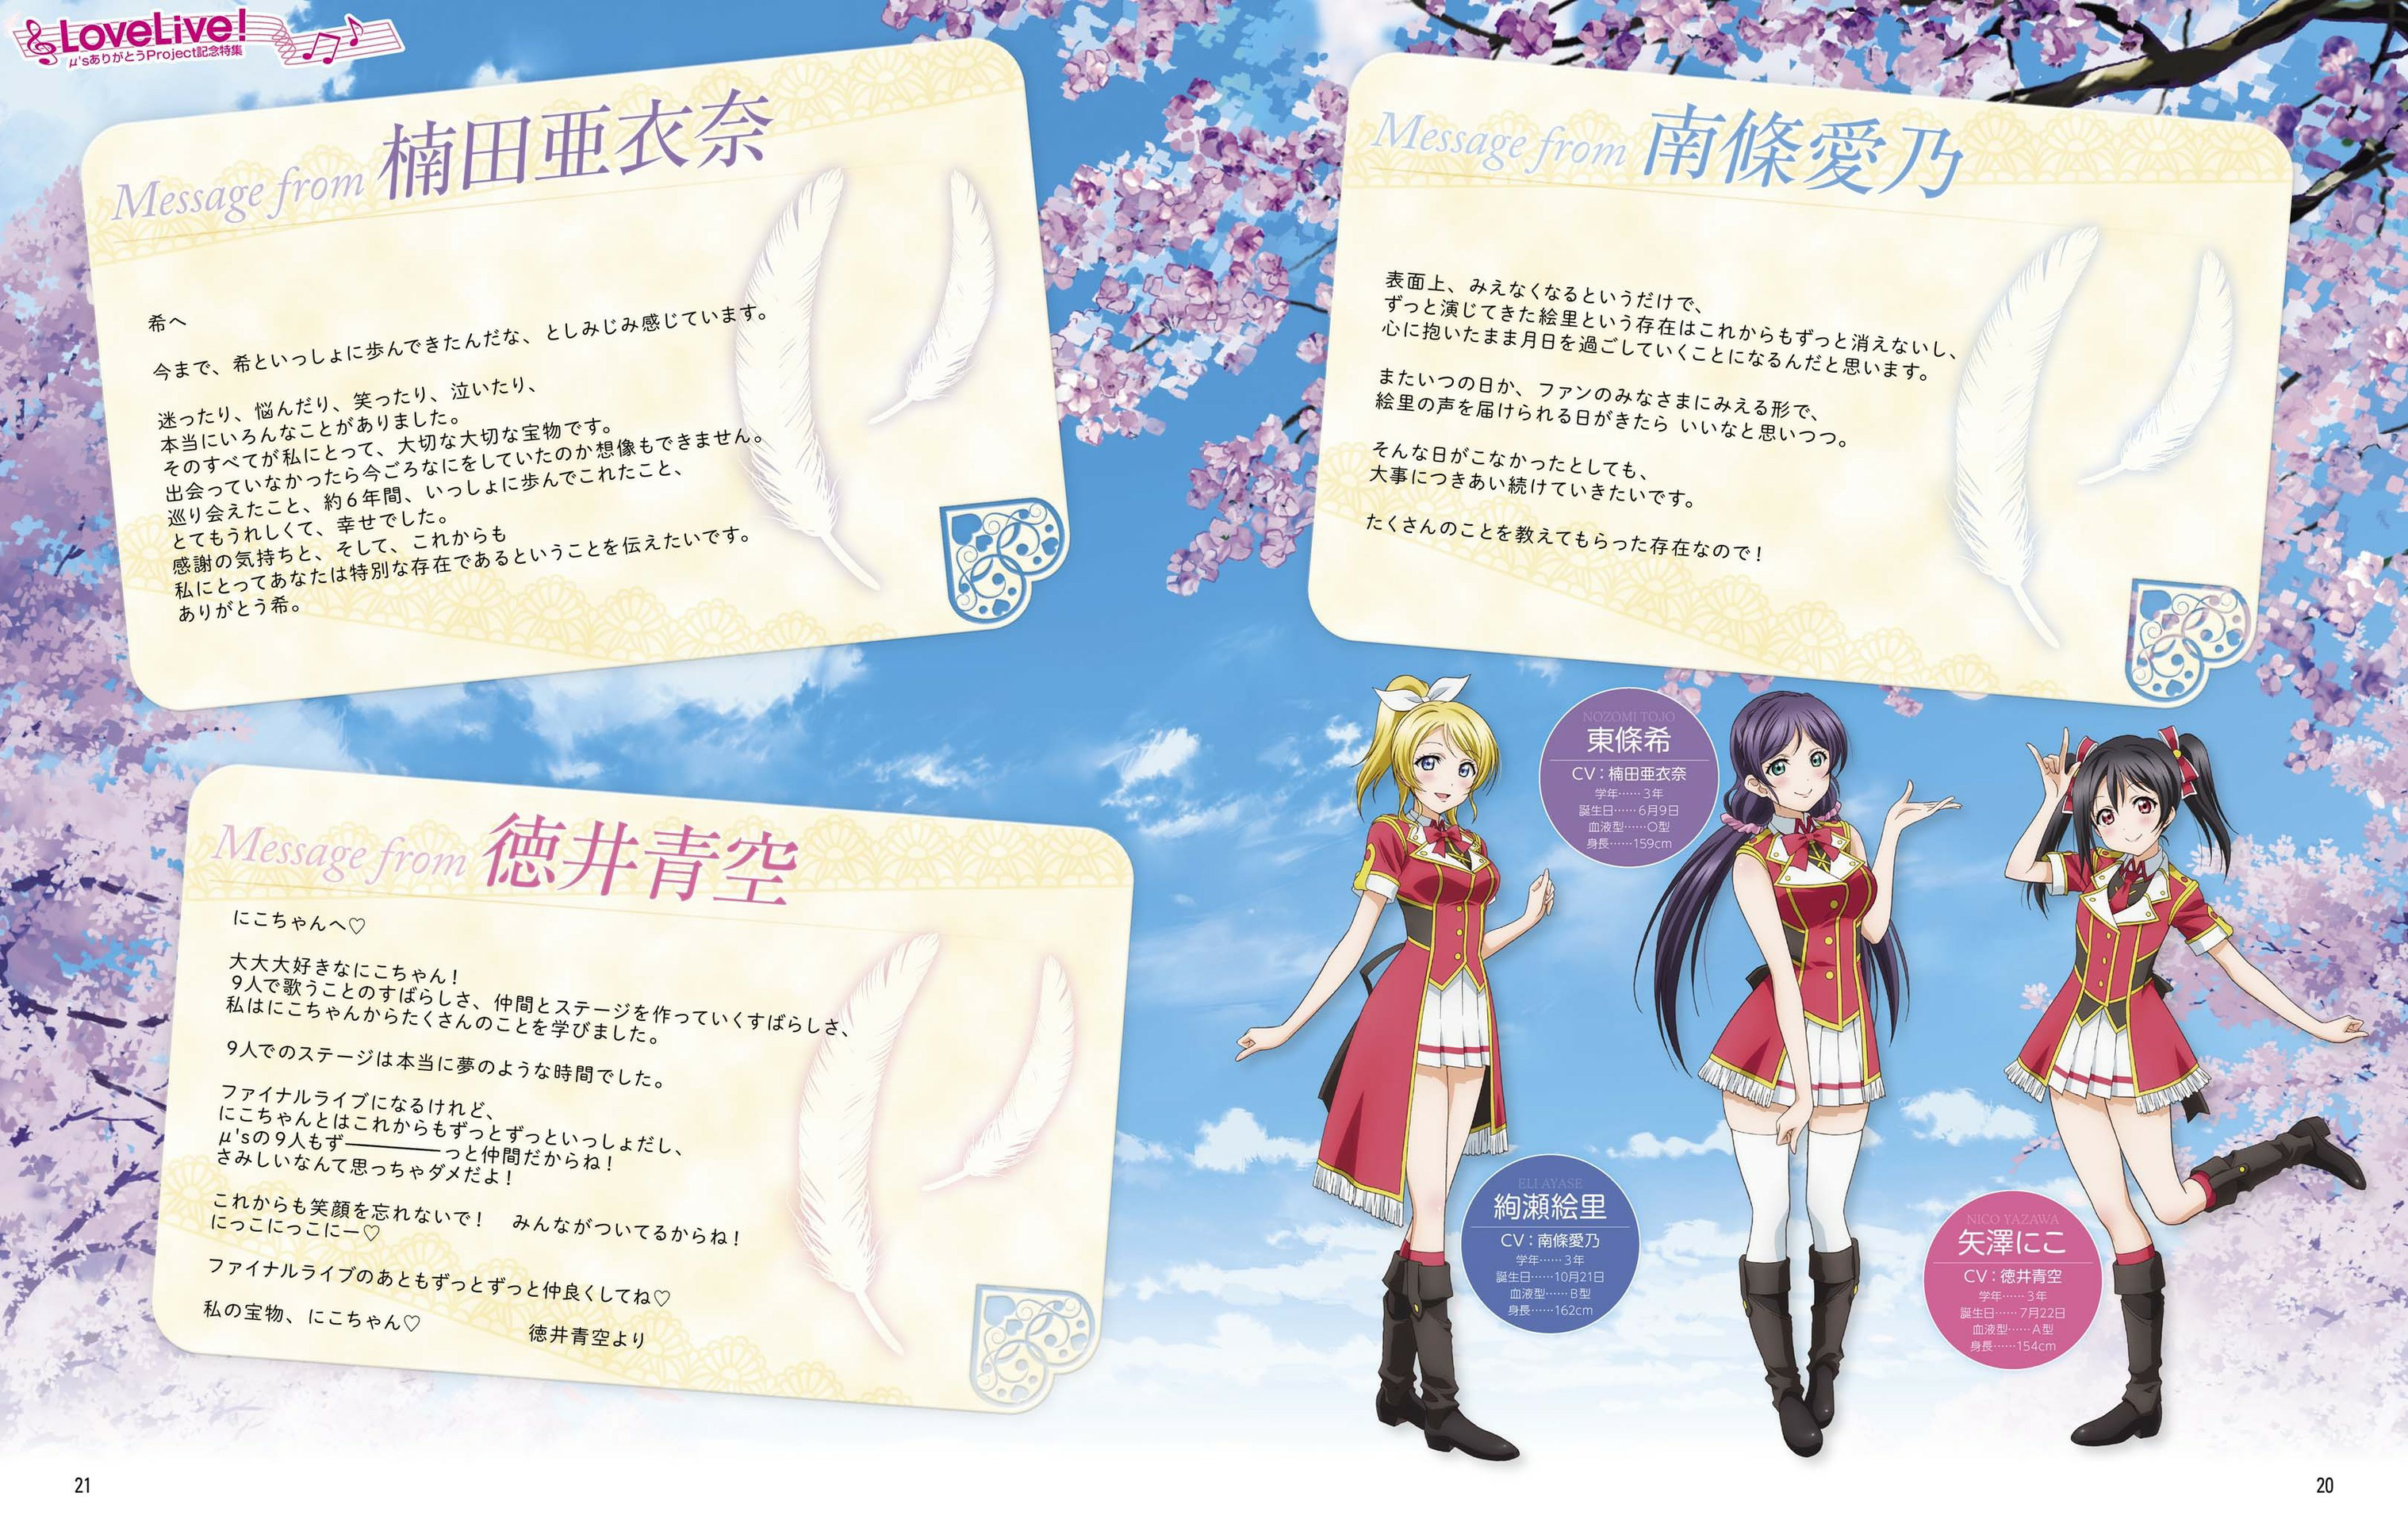 Arquivo:Μ's Arigatou Project Messages 04.jpg